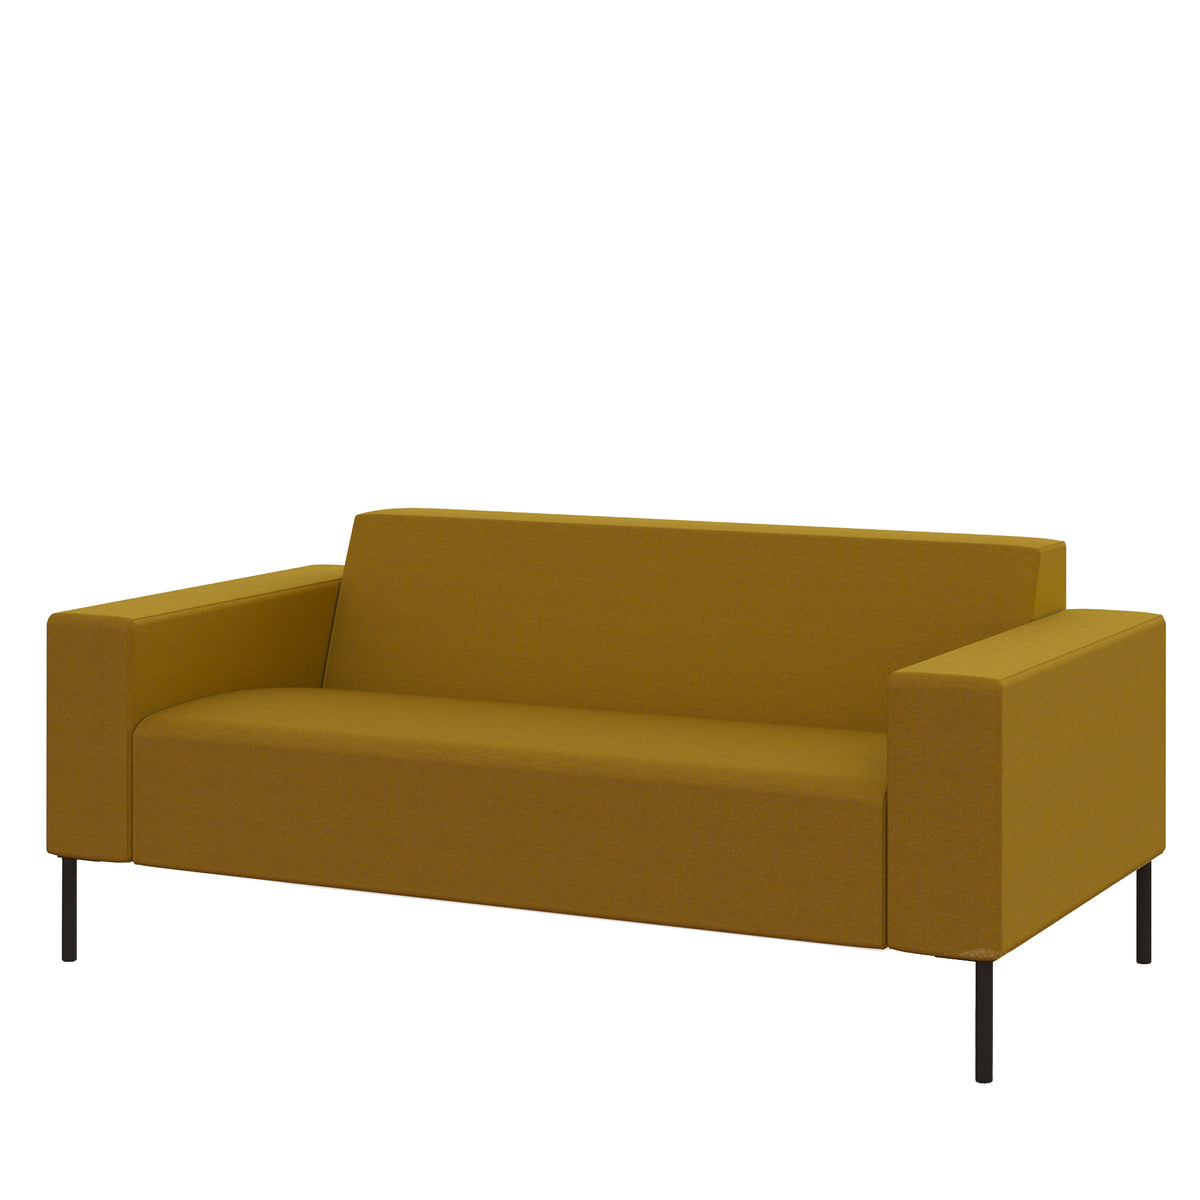 Hitch Mylius HM18 Origin Two Seat Sofa Black Legs Tooting